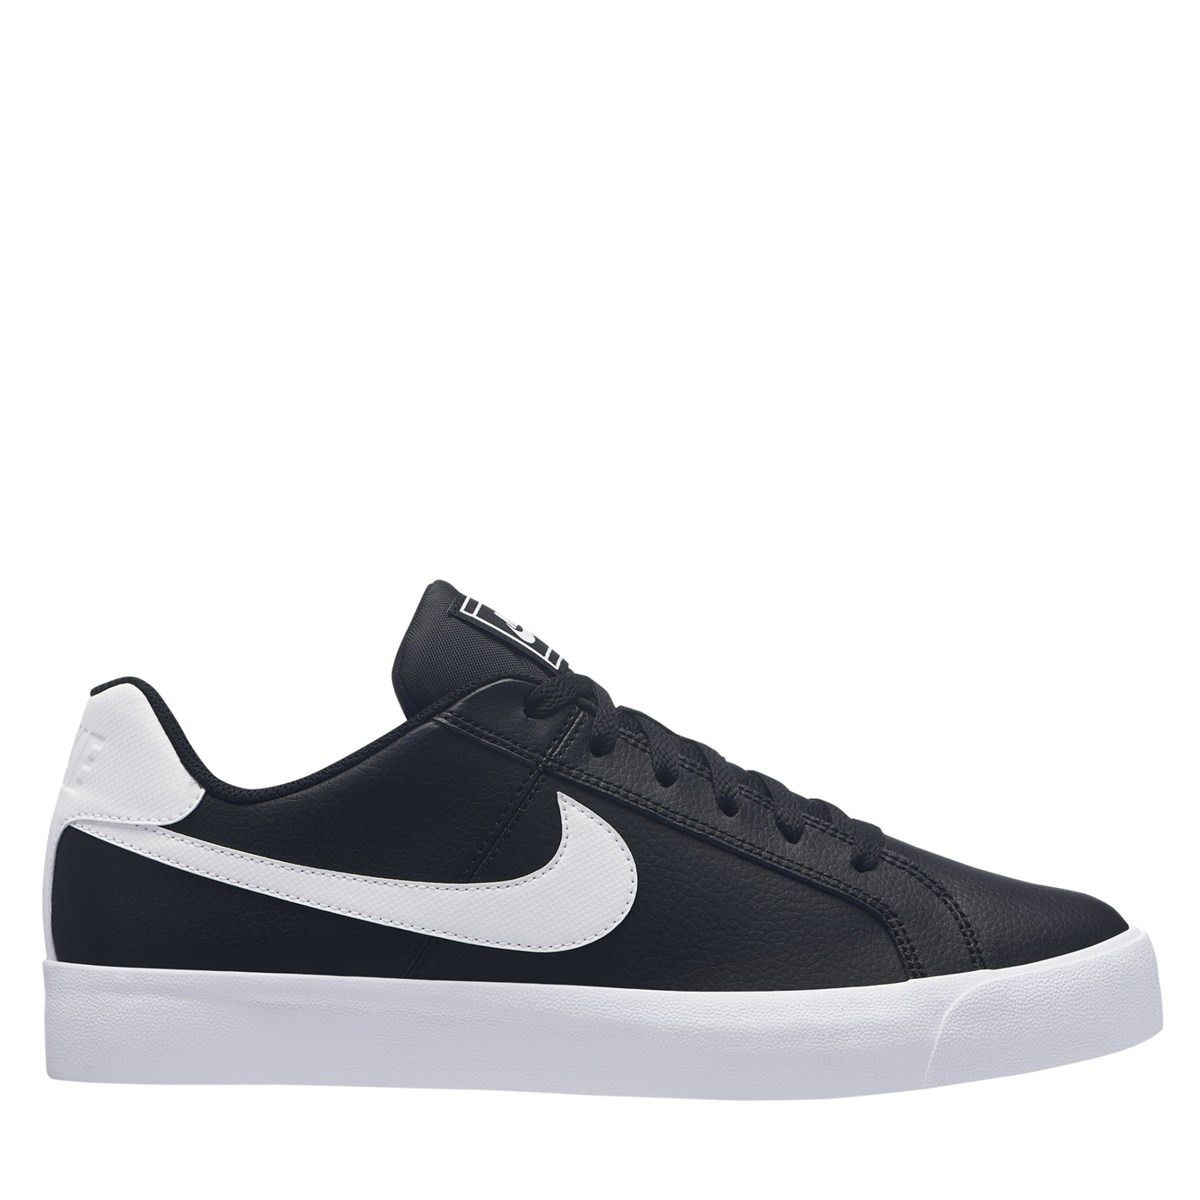 Men's Court Royale AC Sneakers in Black